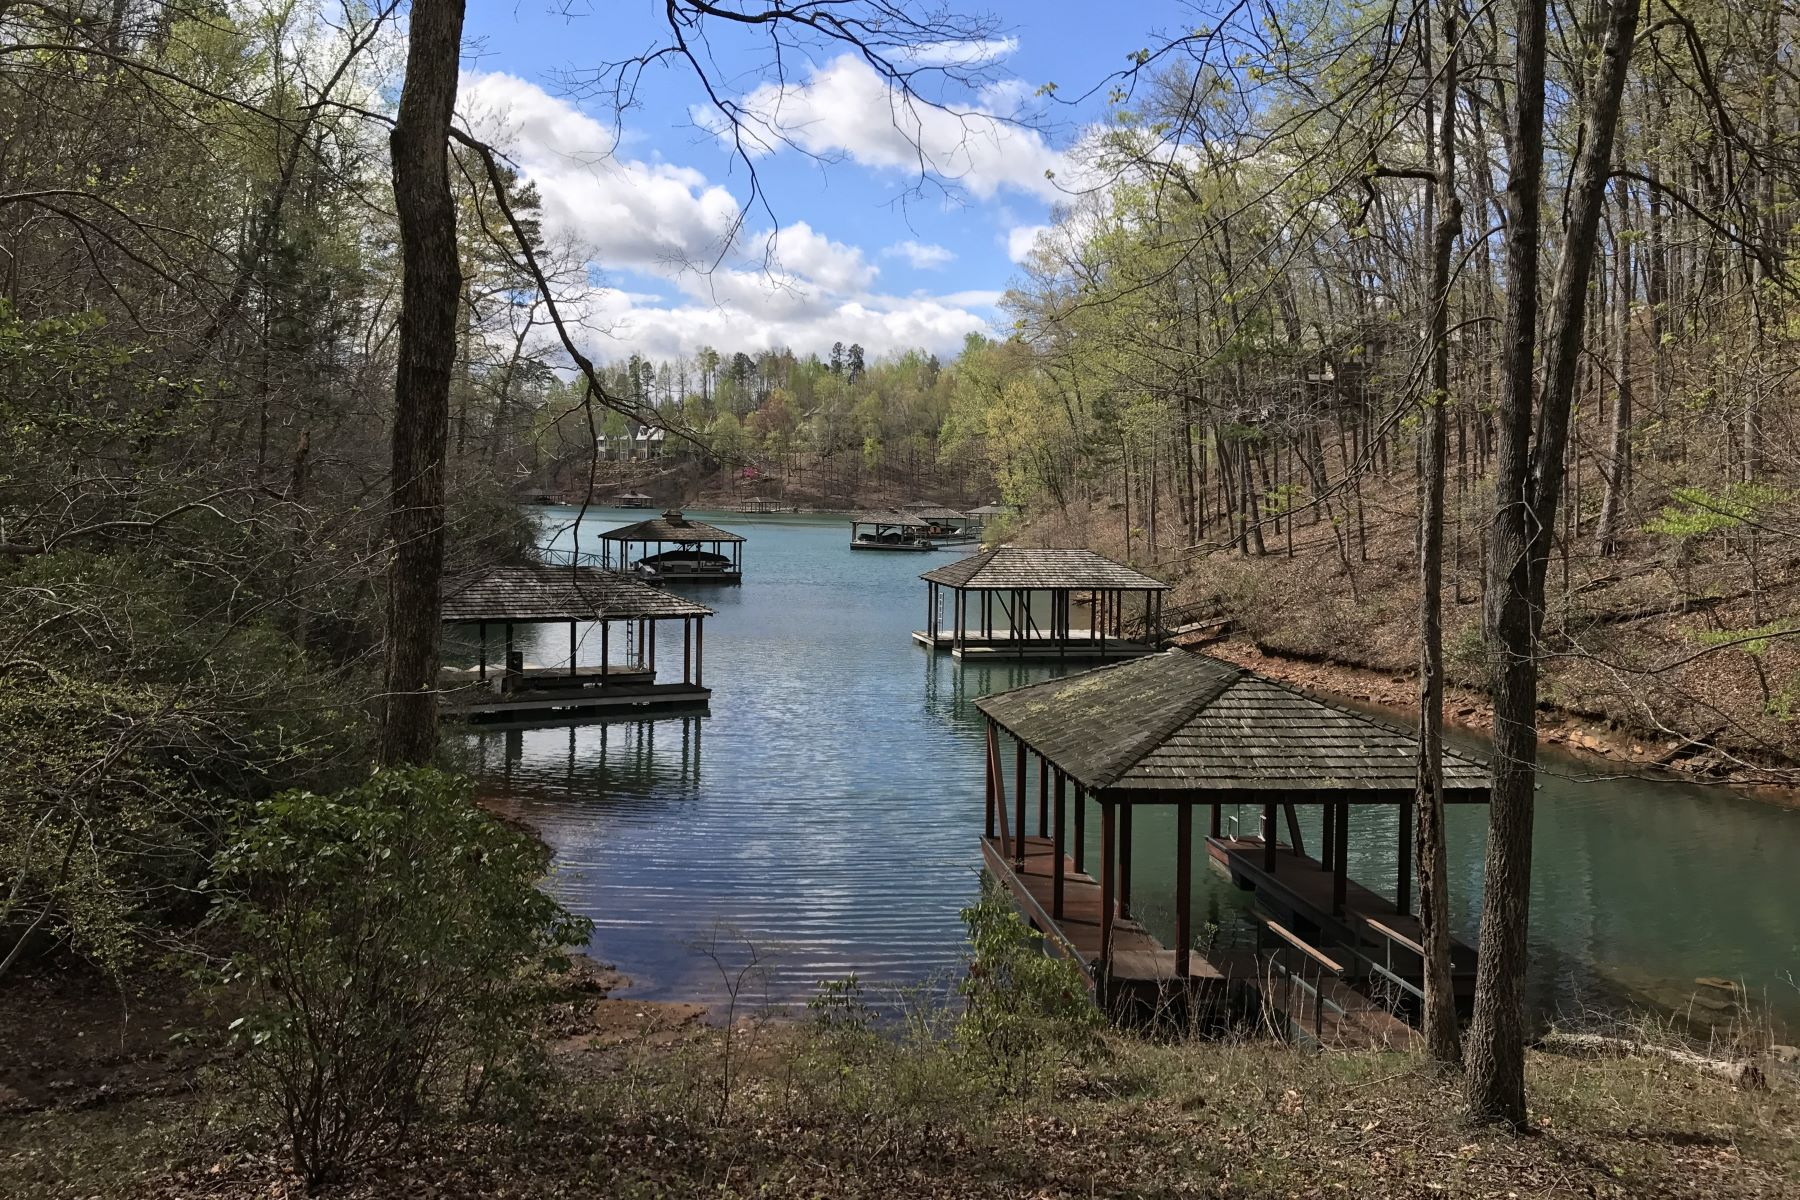 Land for Sale at Tucked Peacefully in a Quiet Cove RES B1, Sunset, South Carolina 29685 United States